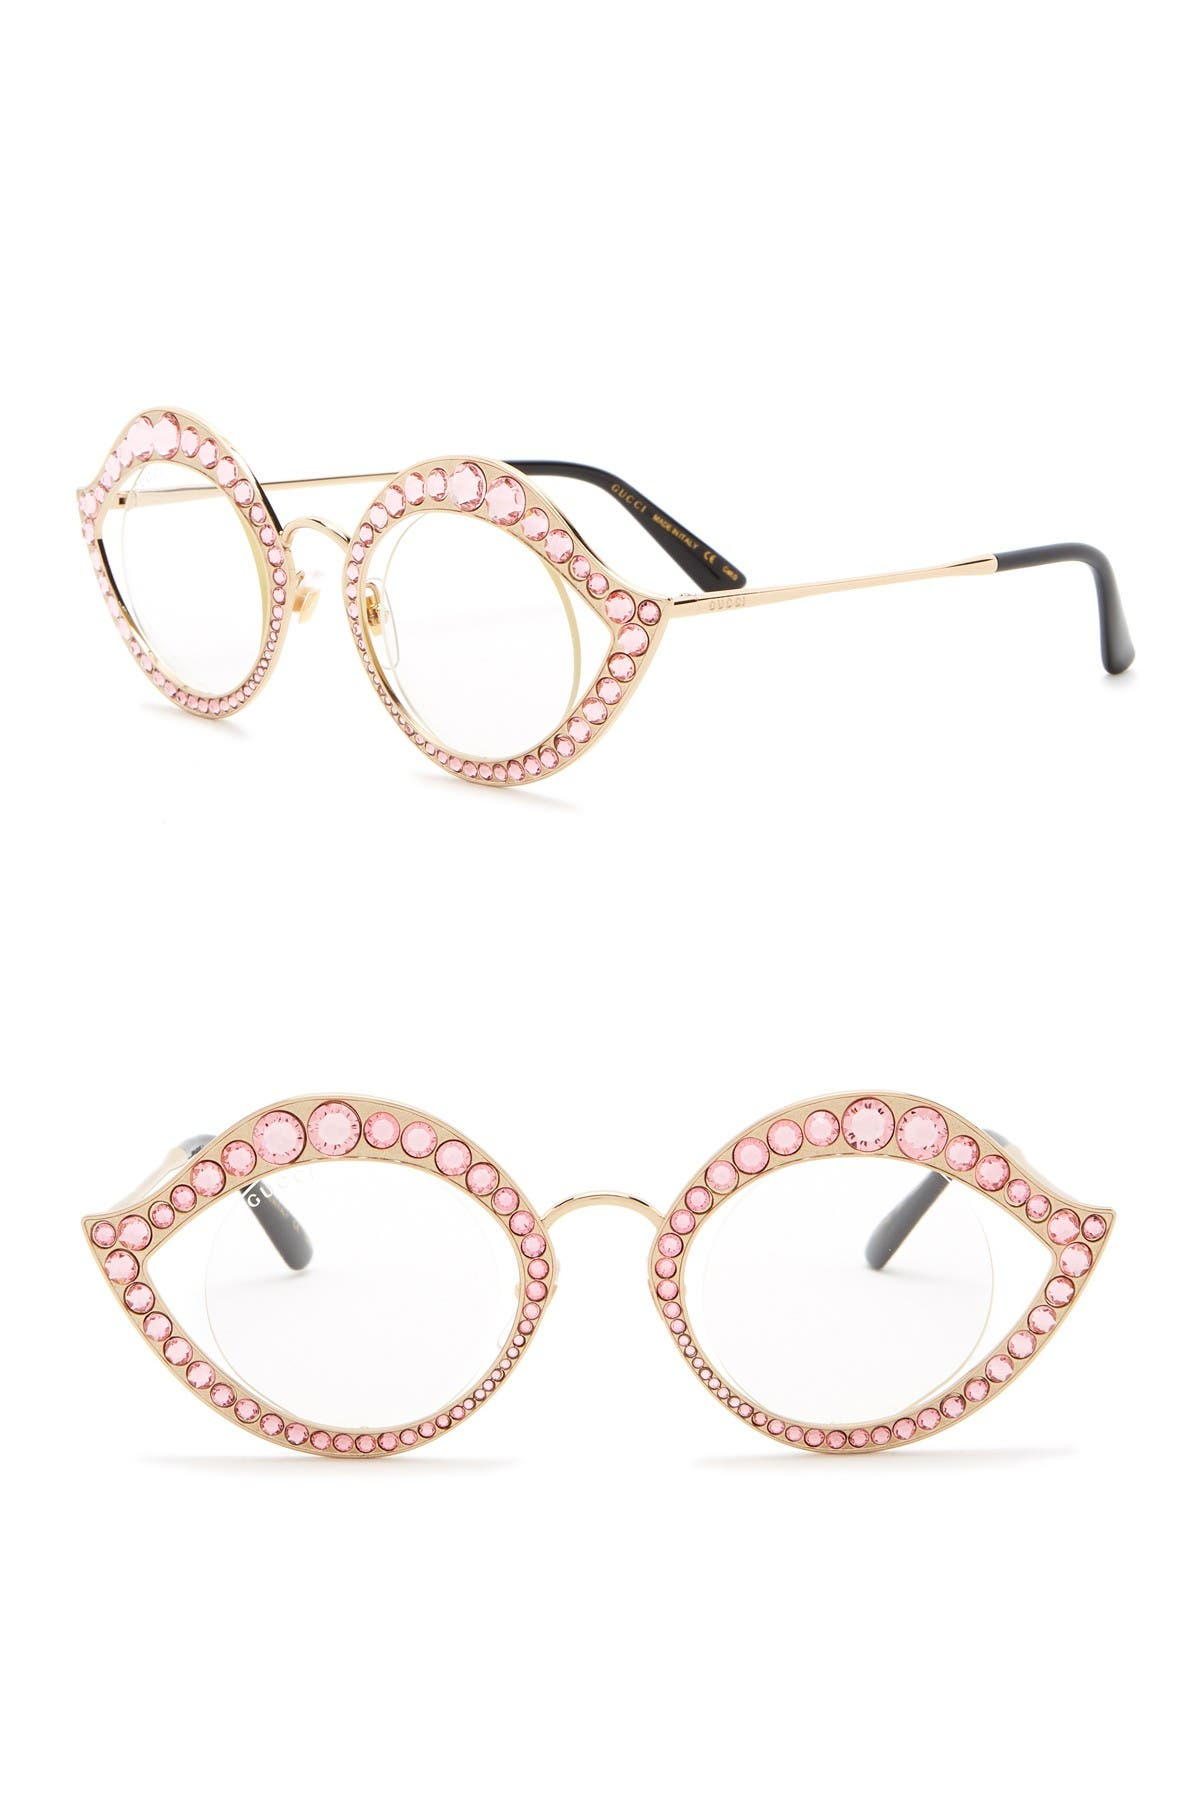 Image of GUCCI 41mm Crystal Accented Cat Eye Optical Frames